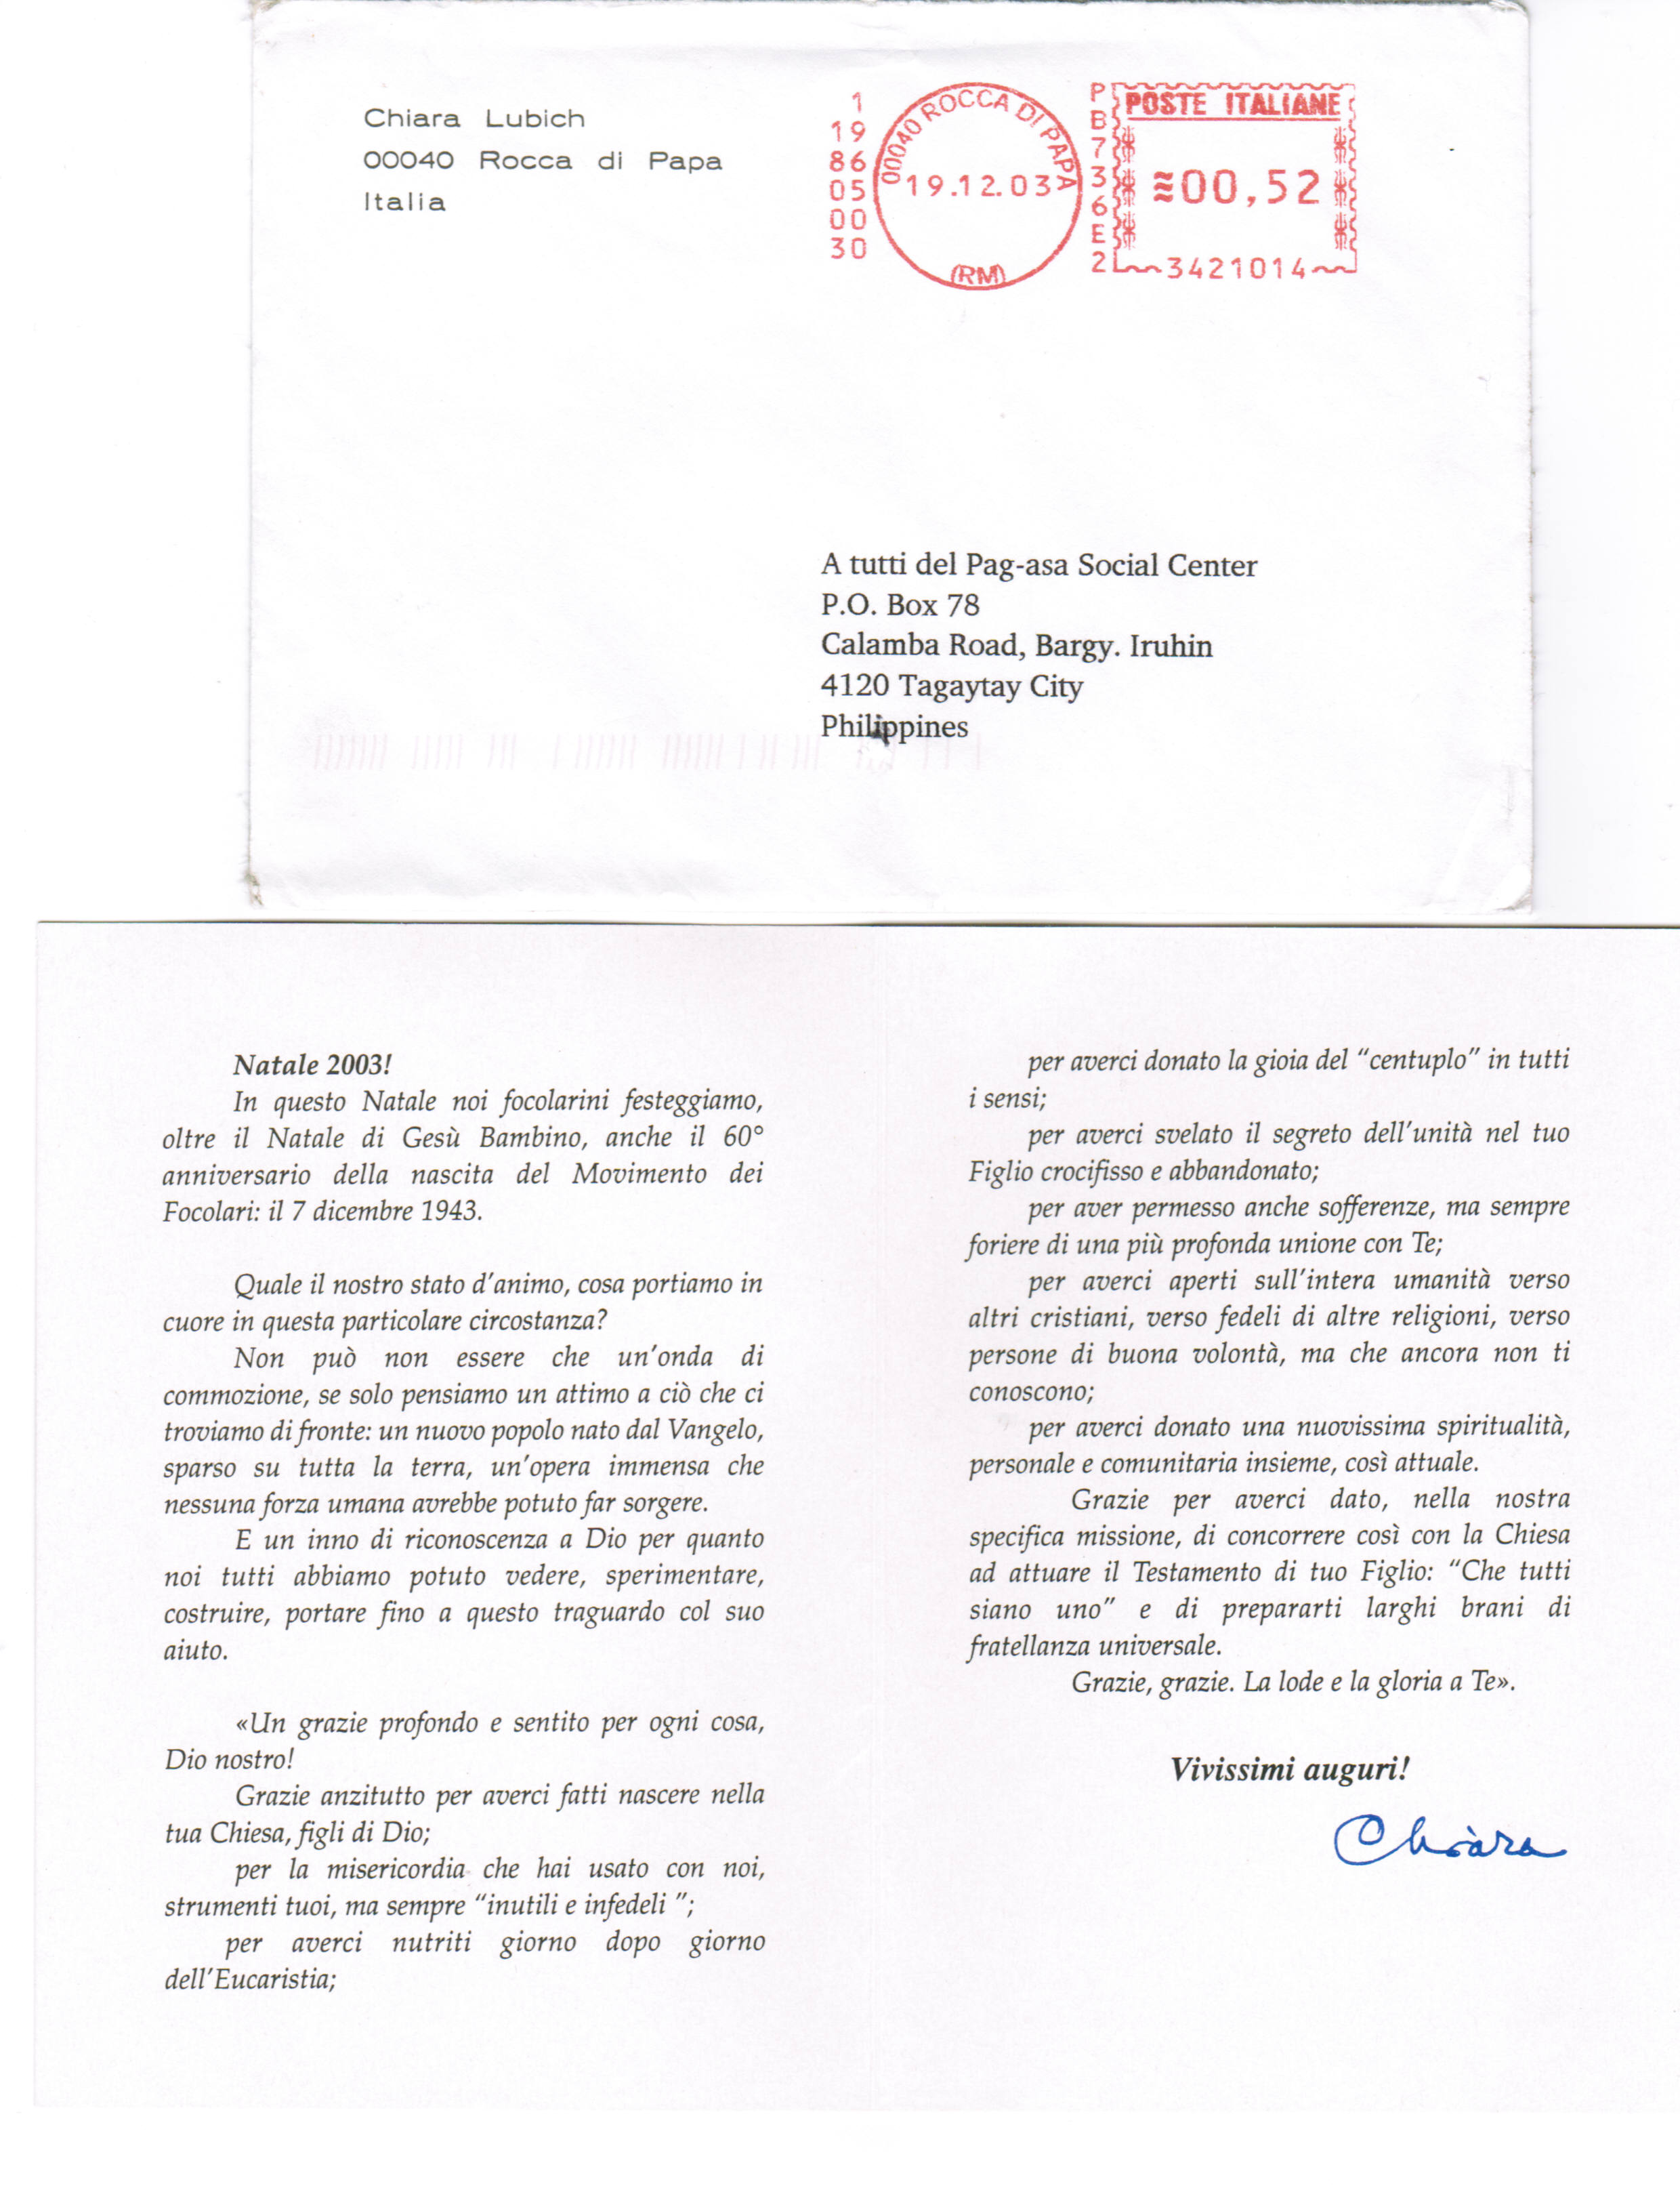 Christmas letter to Pag-asa from Chiara Lubich (2003)